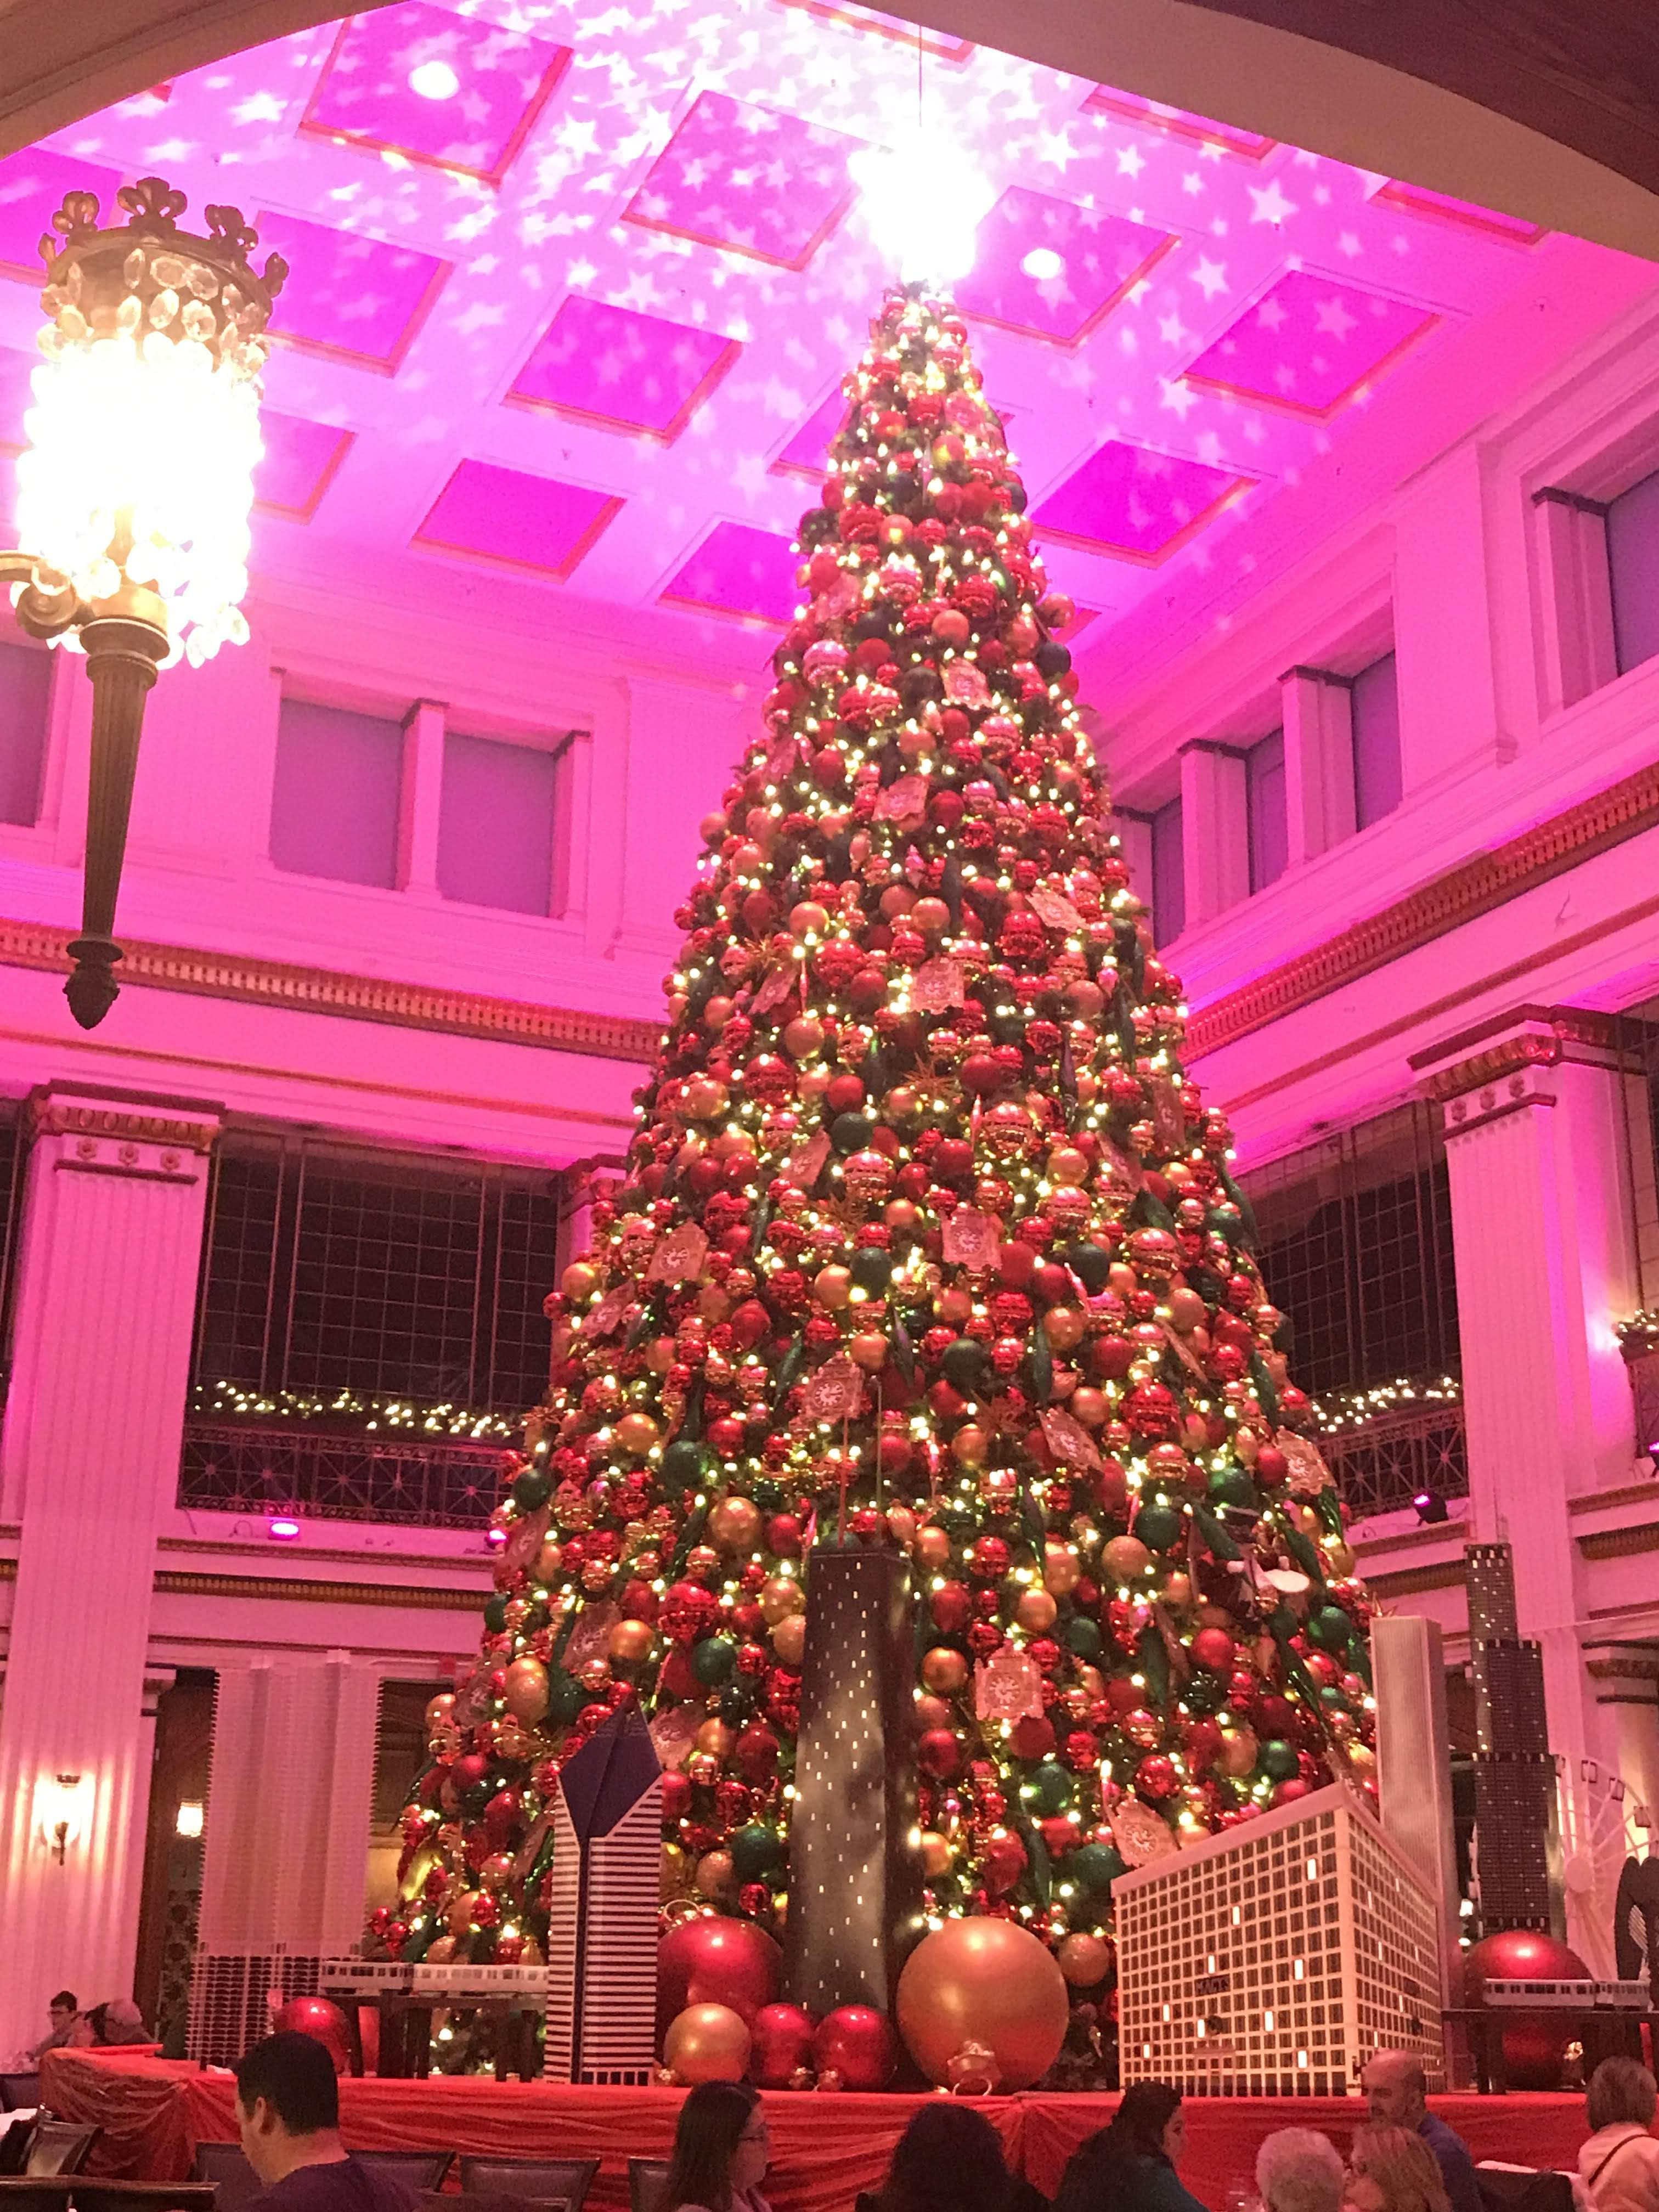 5 Must-See Christmas Trees in Downtown Chicago